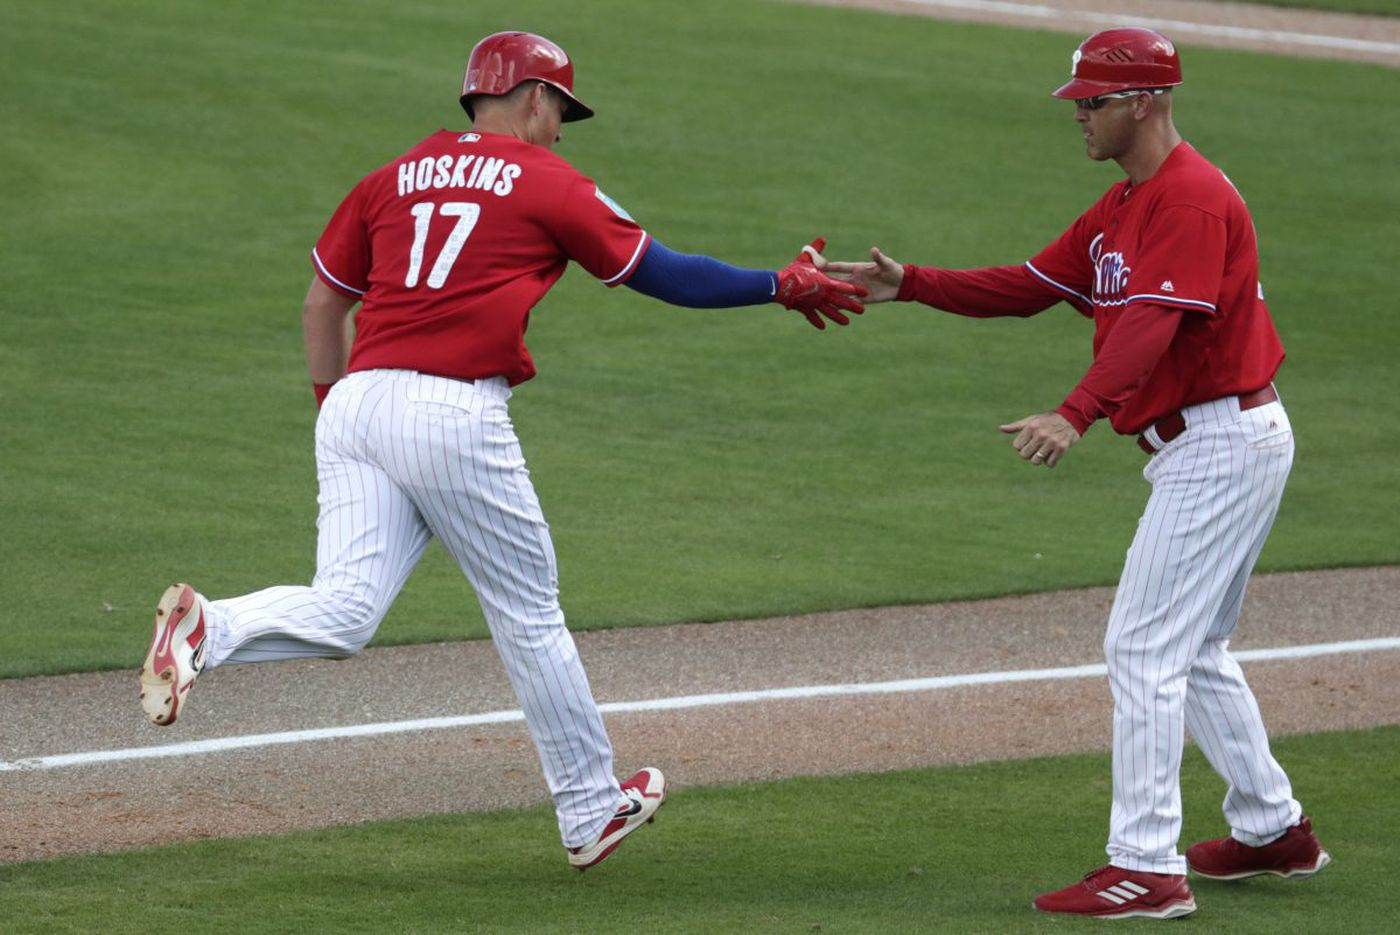 Rhys Hoskins homers, but Phillies fall to Tigers in spring training game